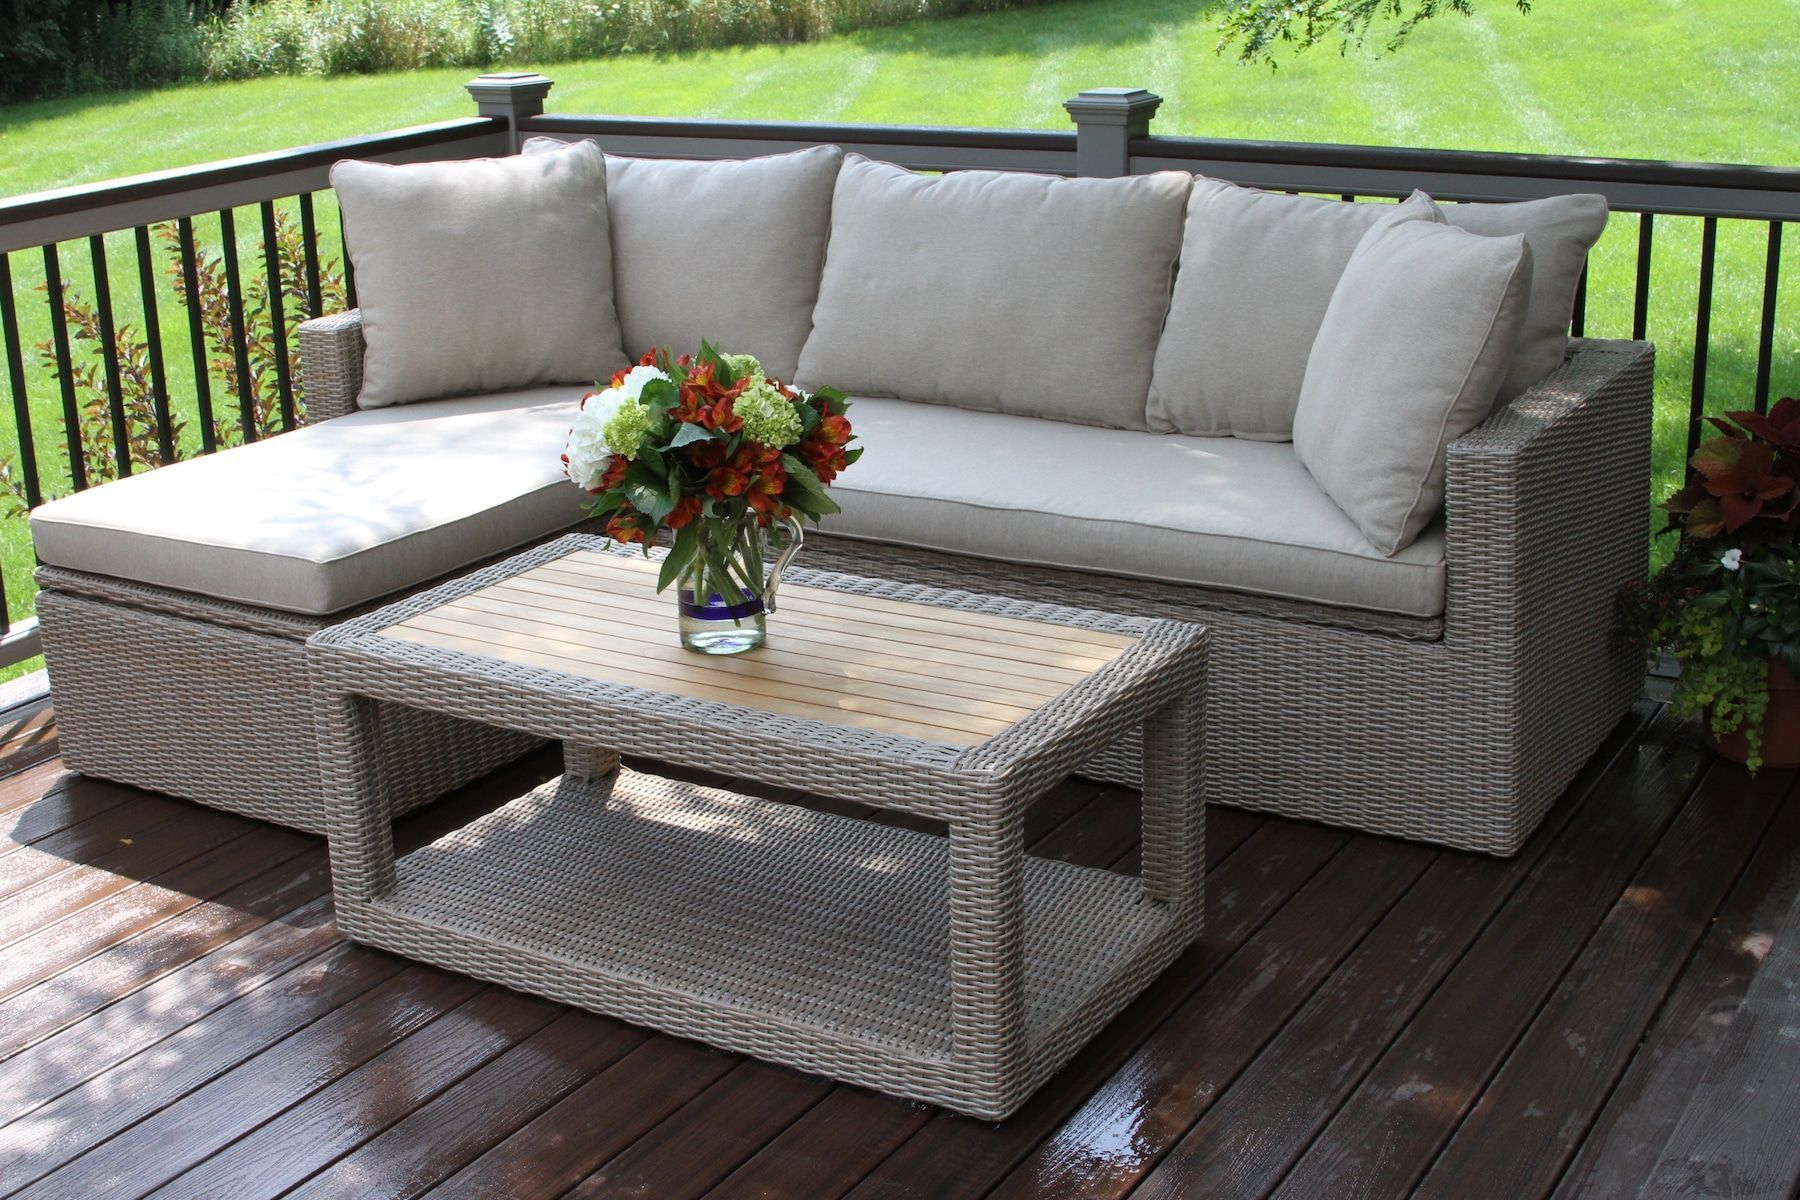 3 Pc Teak Ash Grey Wicker Corner Sofa Set With Waterproof Storage Compartment Inside The S Outdoor Furniture Cushions Garden Sofa Set Used Outdoor Furniture